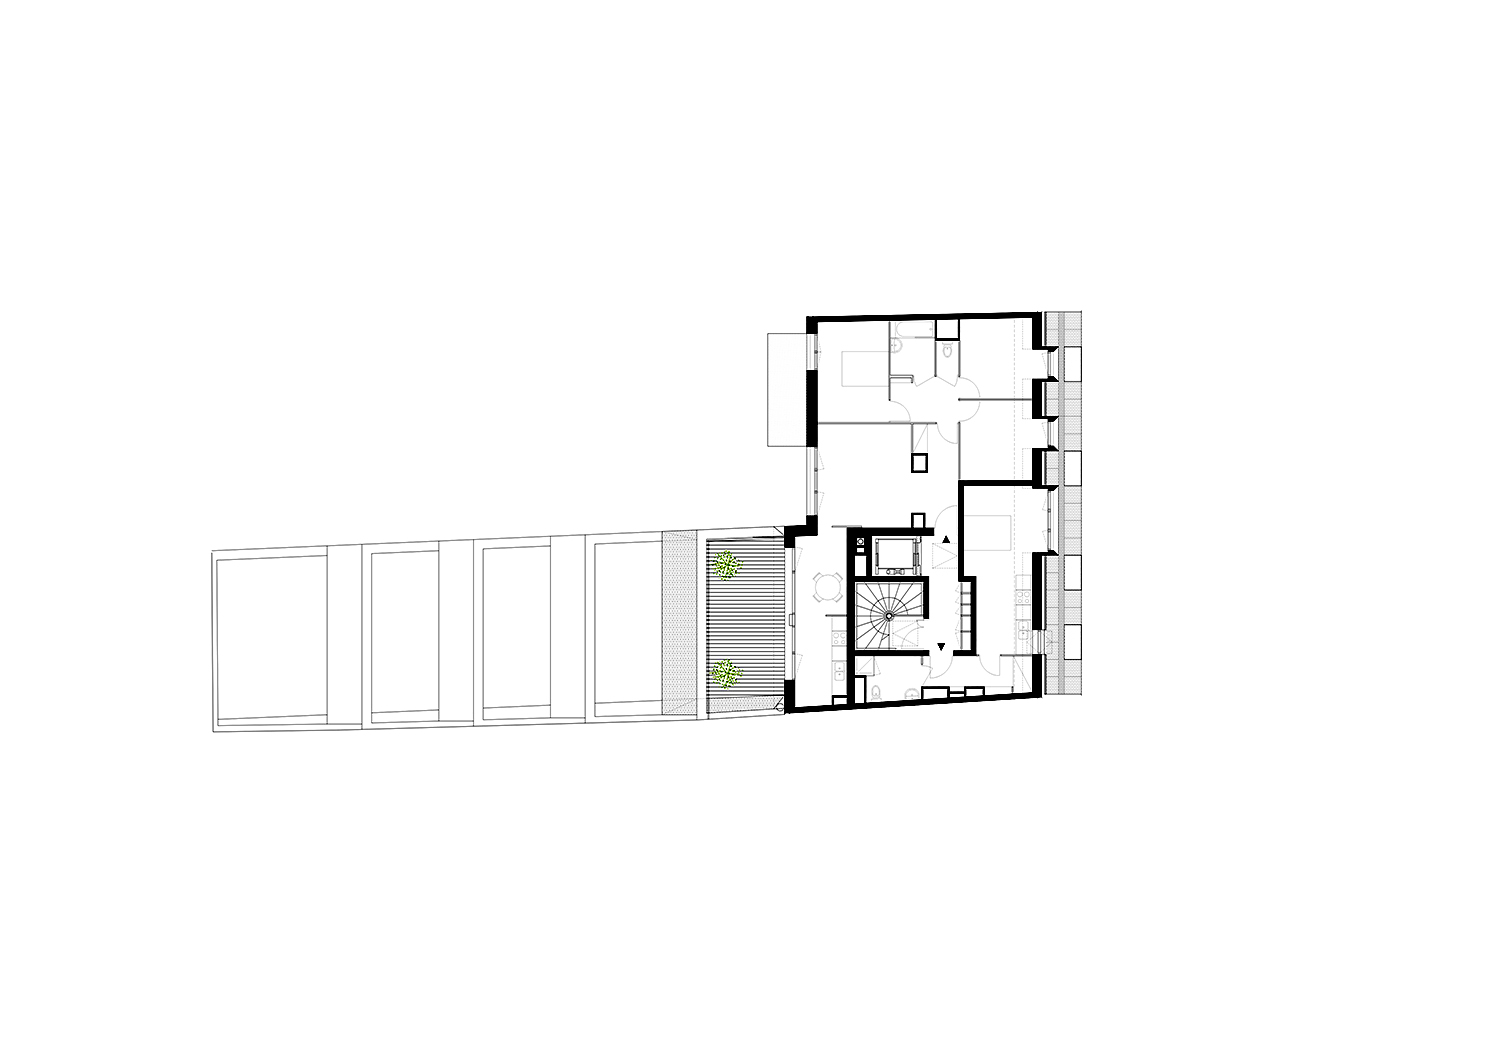 Sixth floor plan }